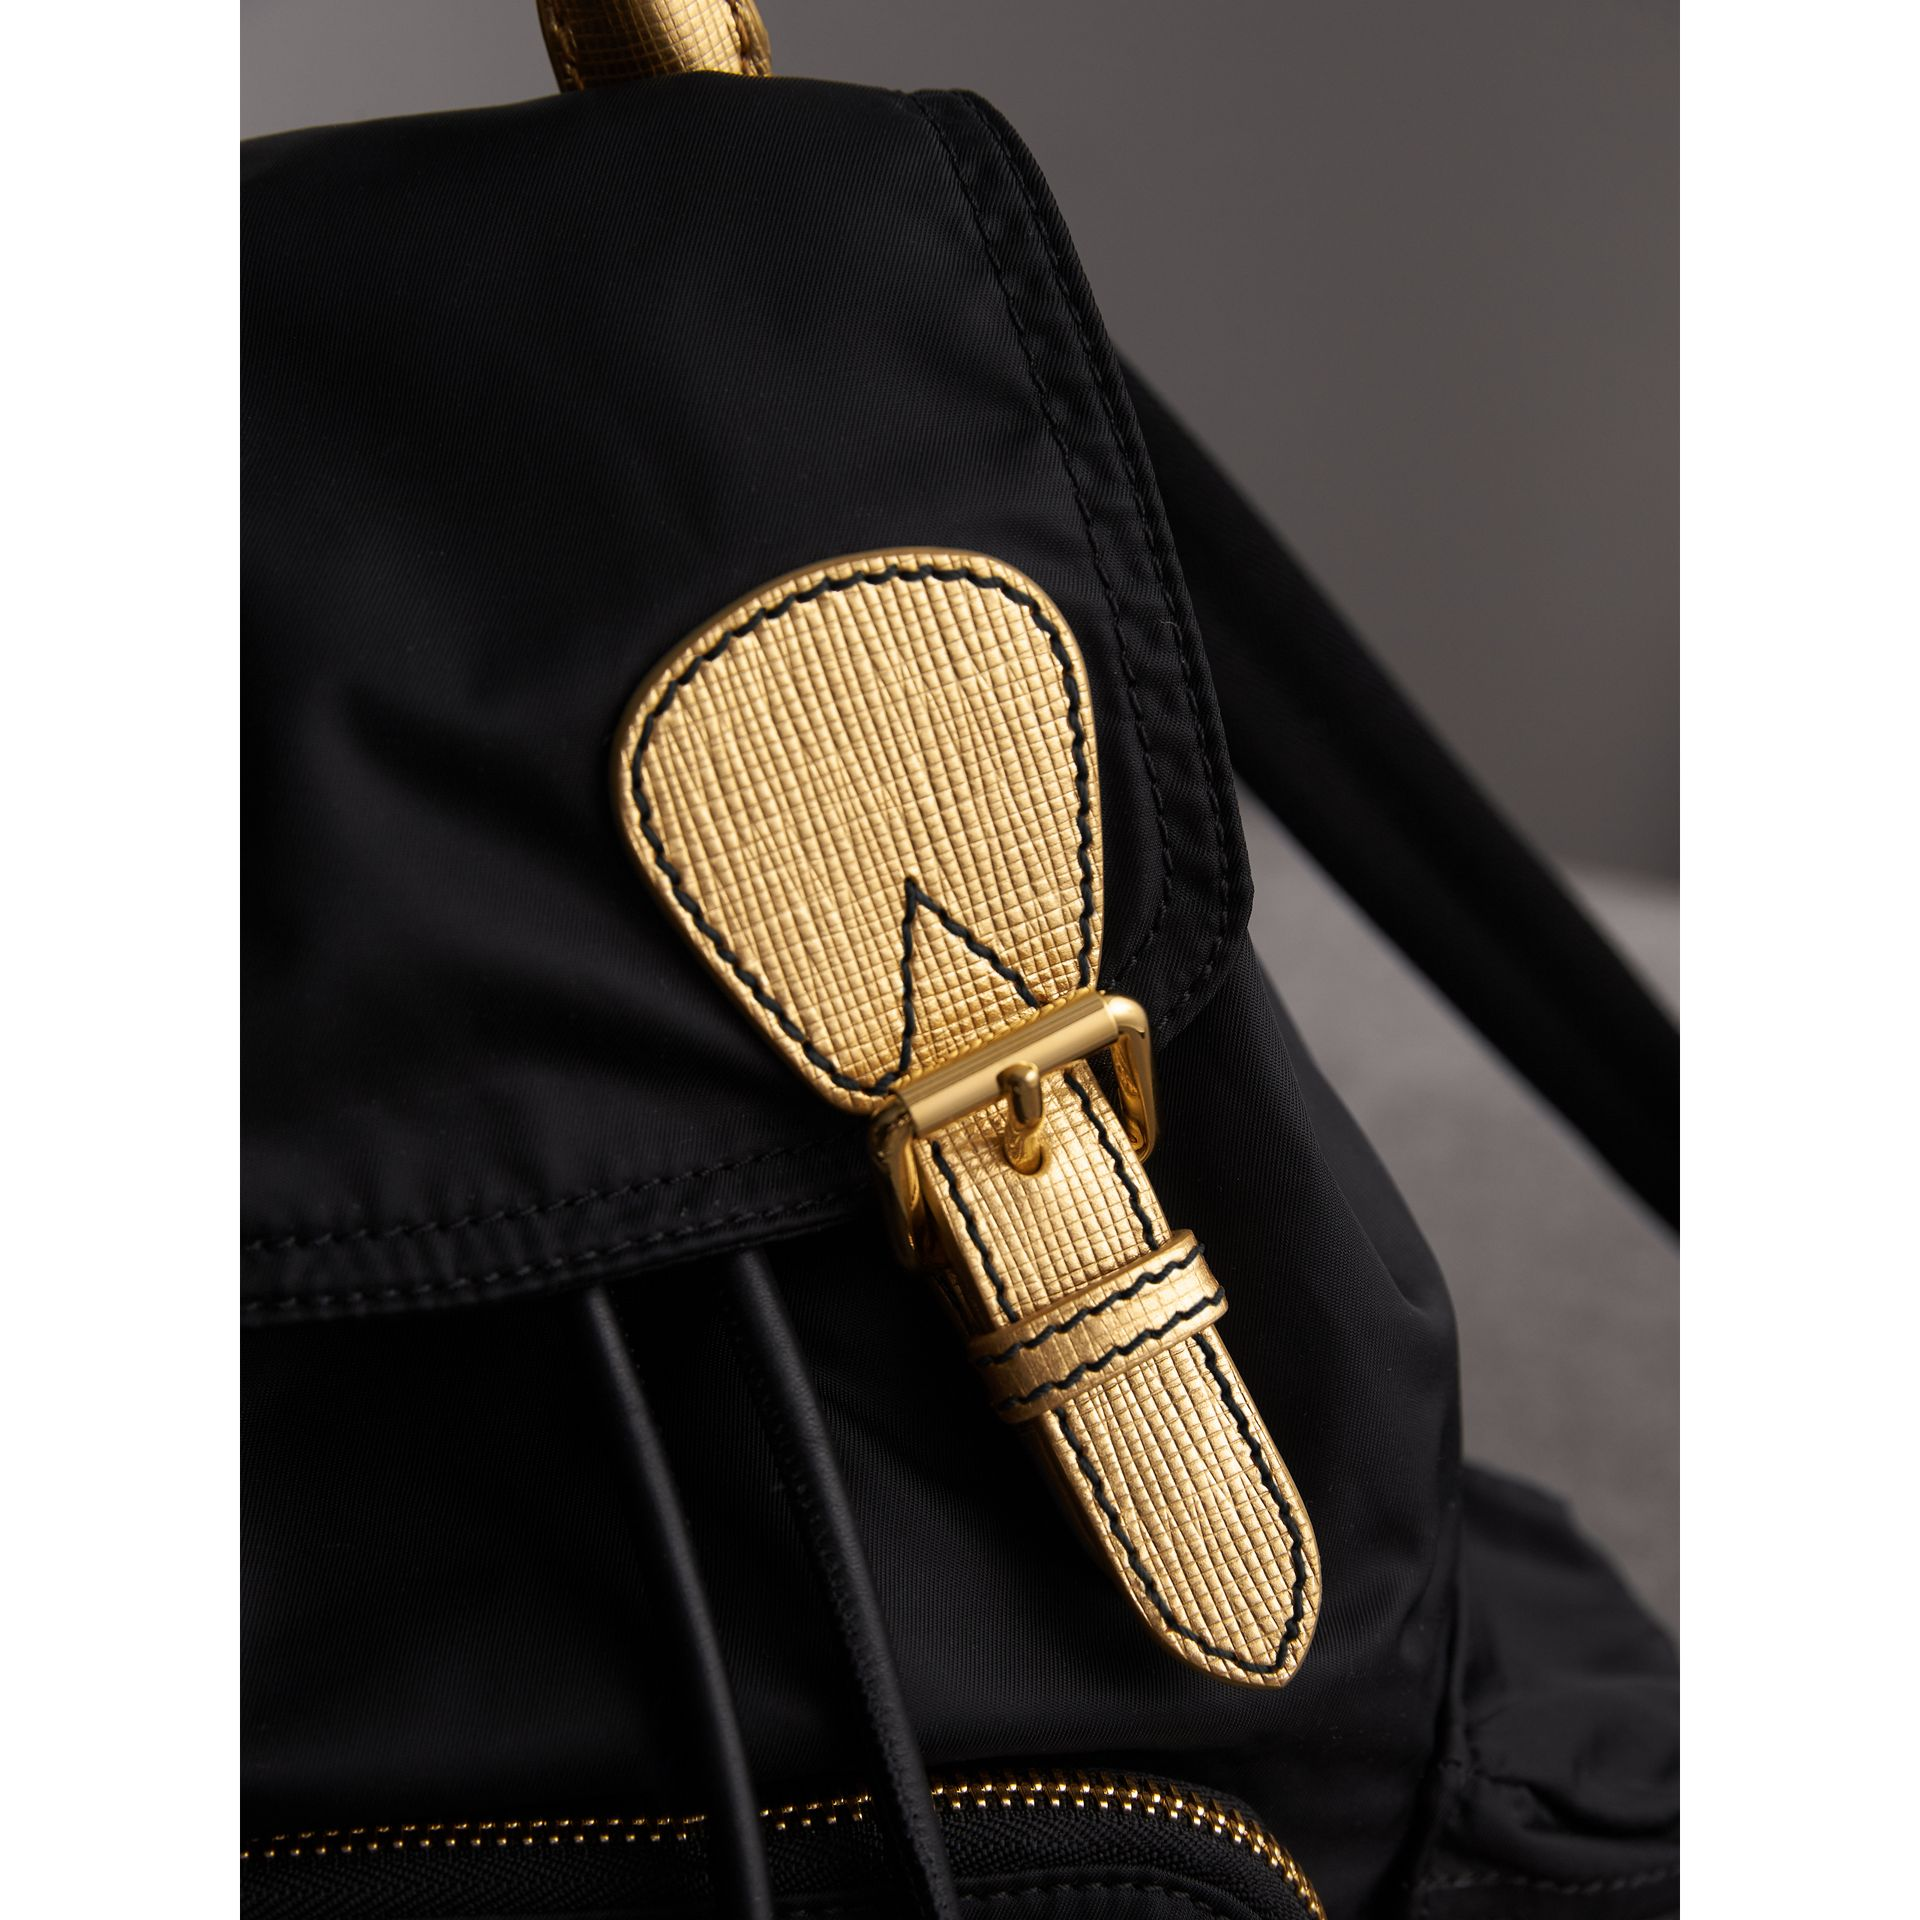 Sac The Rucksack moyen en nylon bicolore et cuir (Noir/or) - Femme | Burberry - photo de la galerie 6